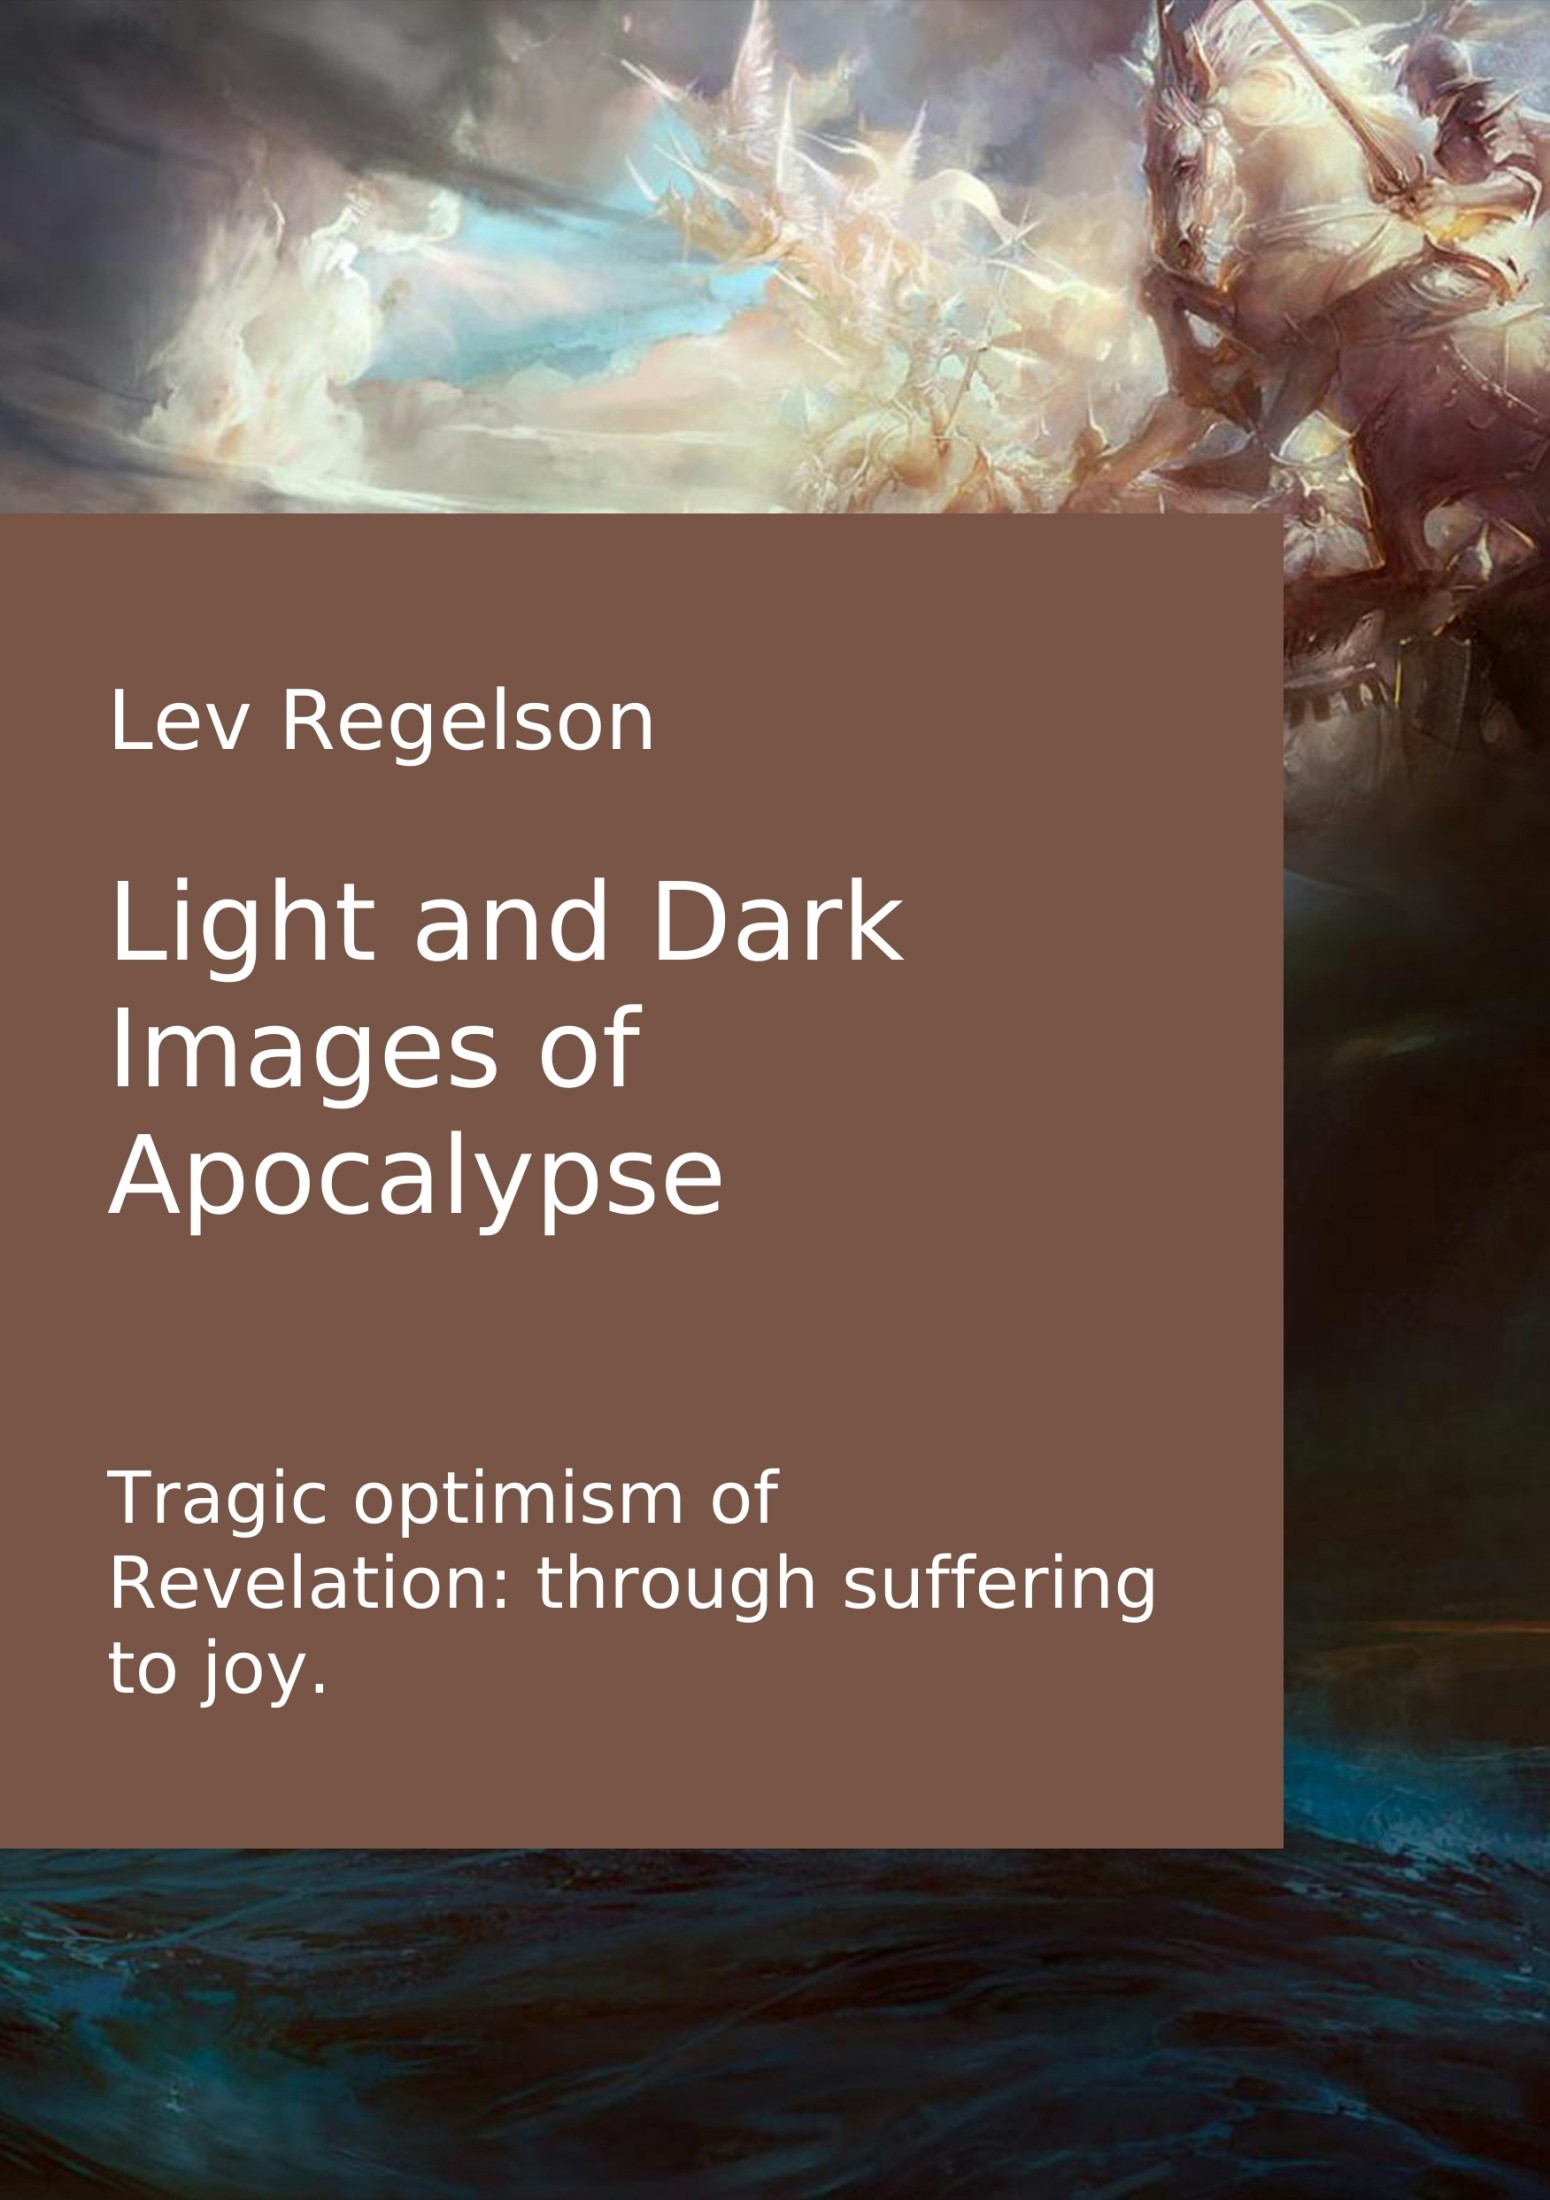 Lev Regelson Light and Dark Images of Apocalypse images of the gendered past